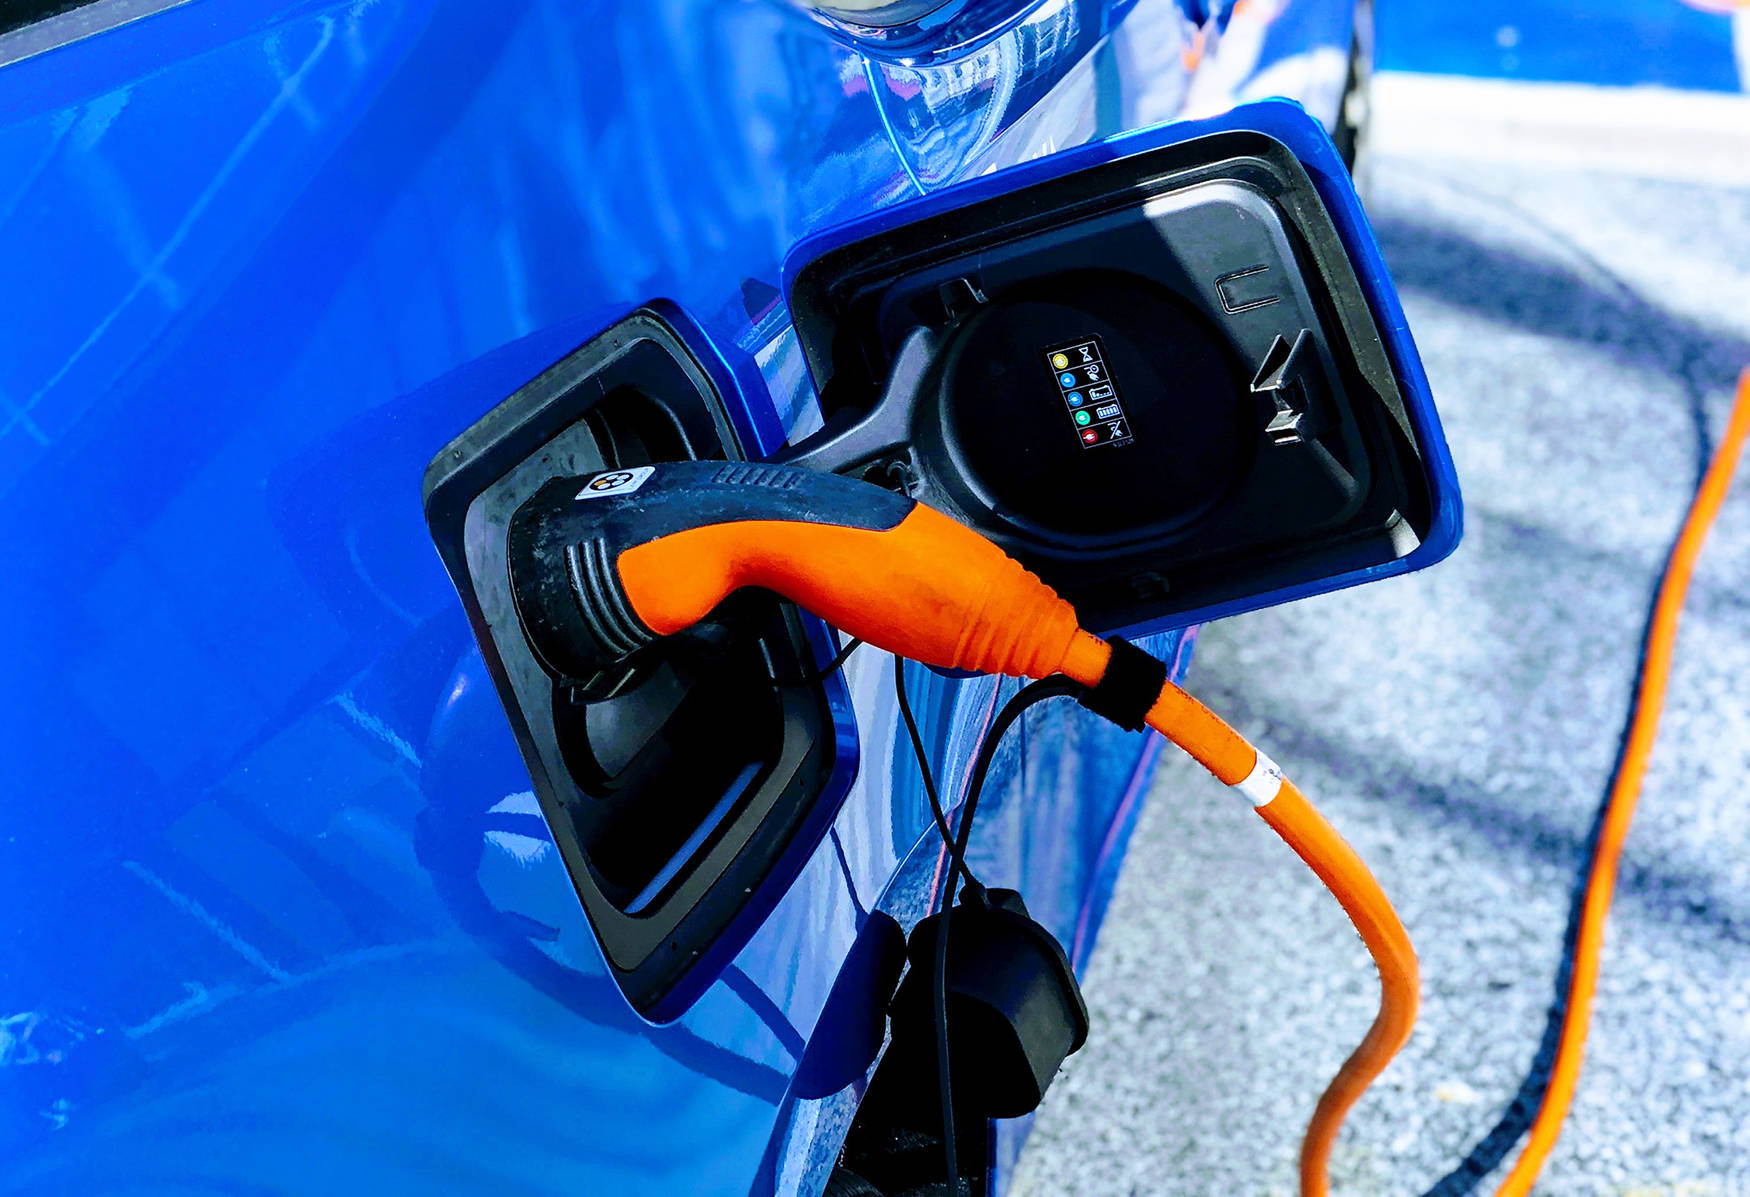 More and more electric cars are on the road, but one Chevy Bolt owner was shocked to see how much his BC Hydro bill skyrocketed once he started charging the vehicle. (Black Press file photo)